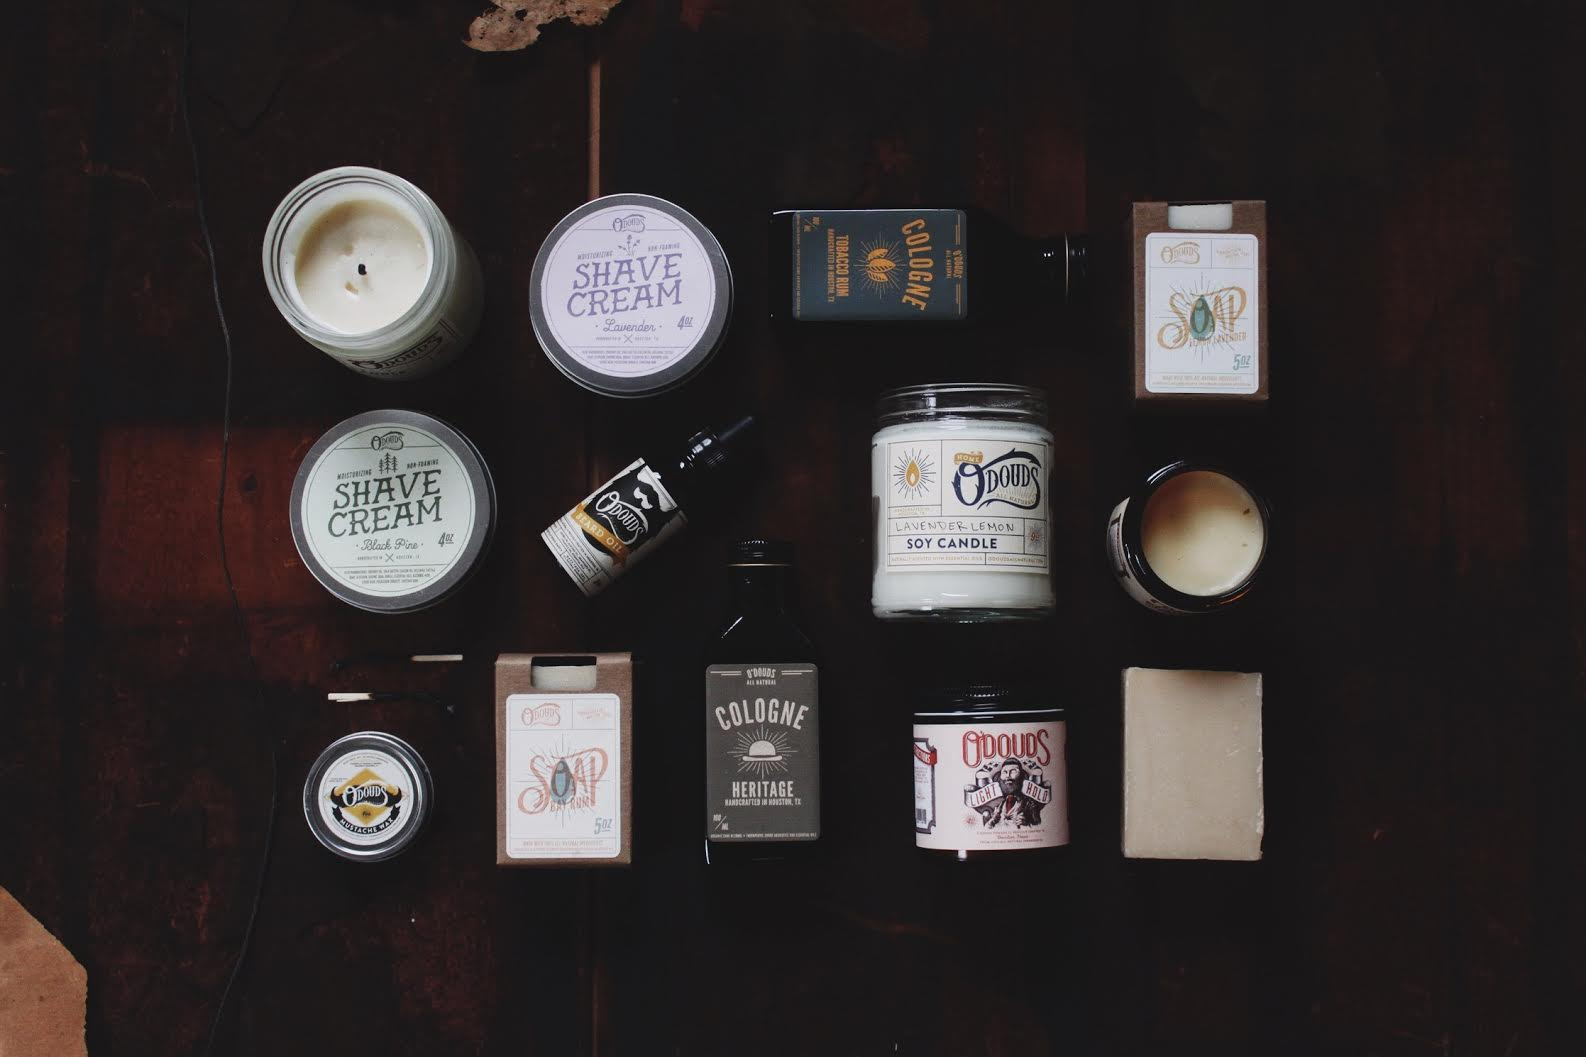 assortment of new O douds cologne, soap, wax and pomade